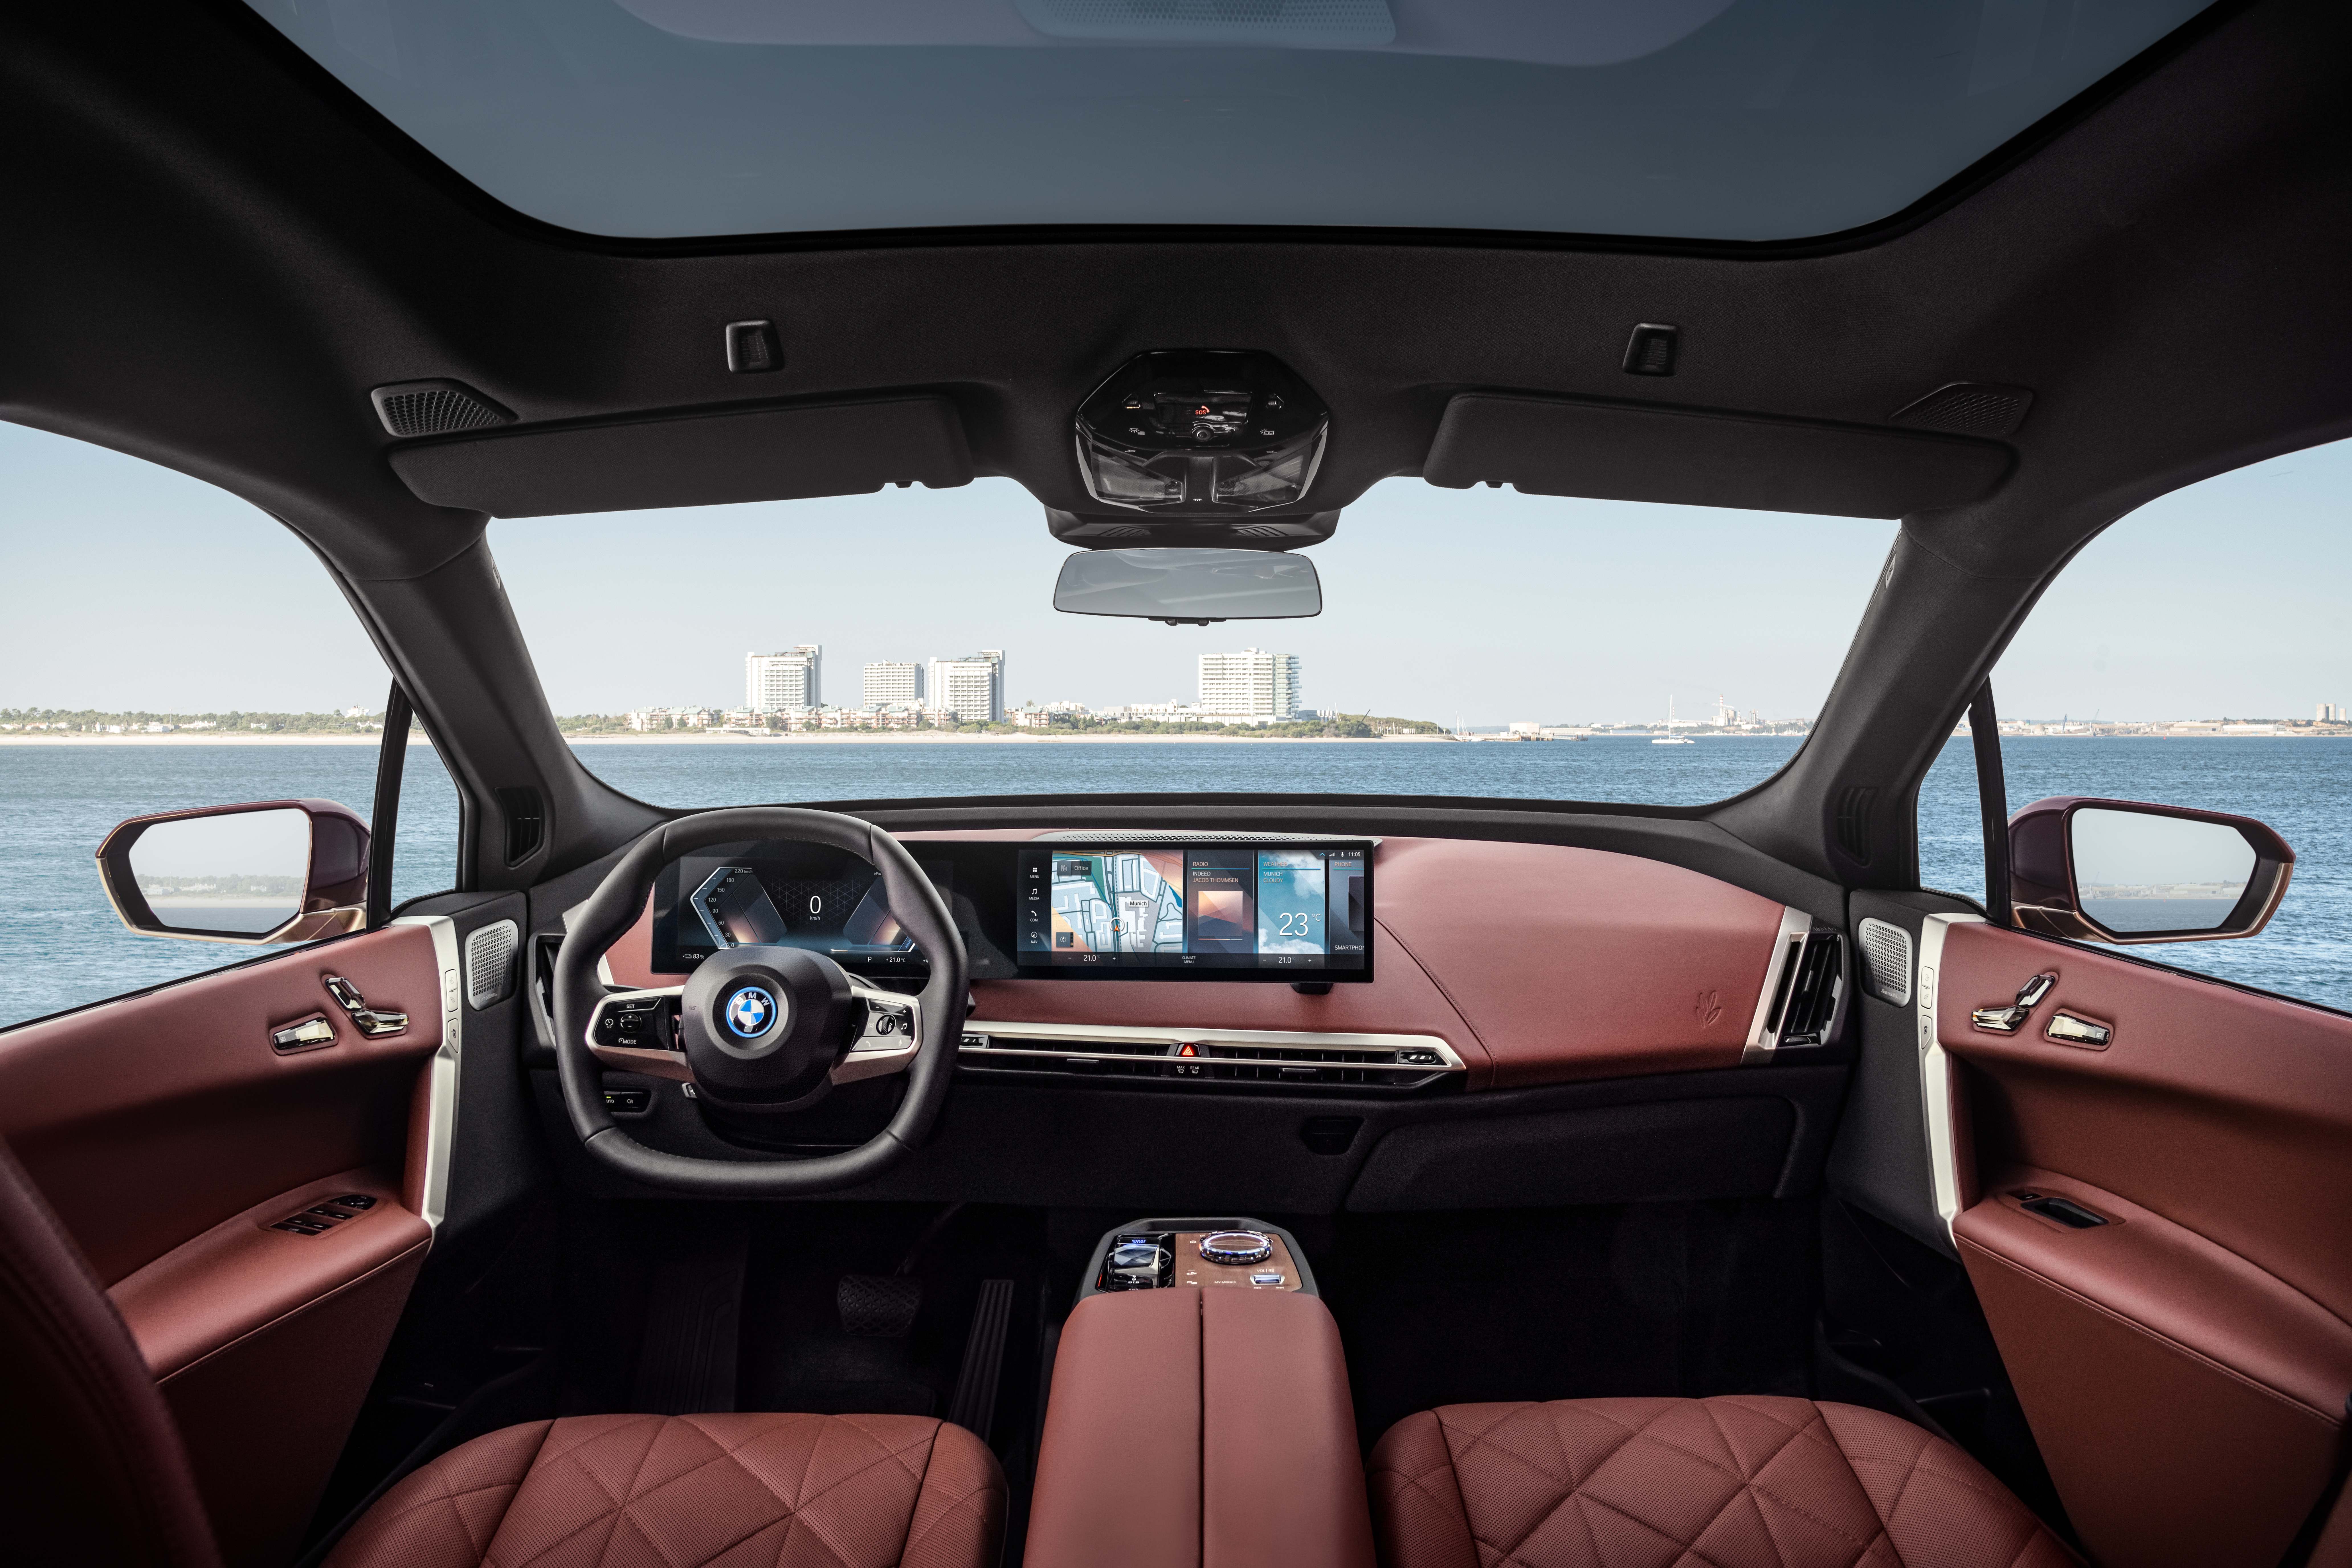 BMW debuts the next generation of its iDrive operating system